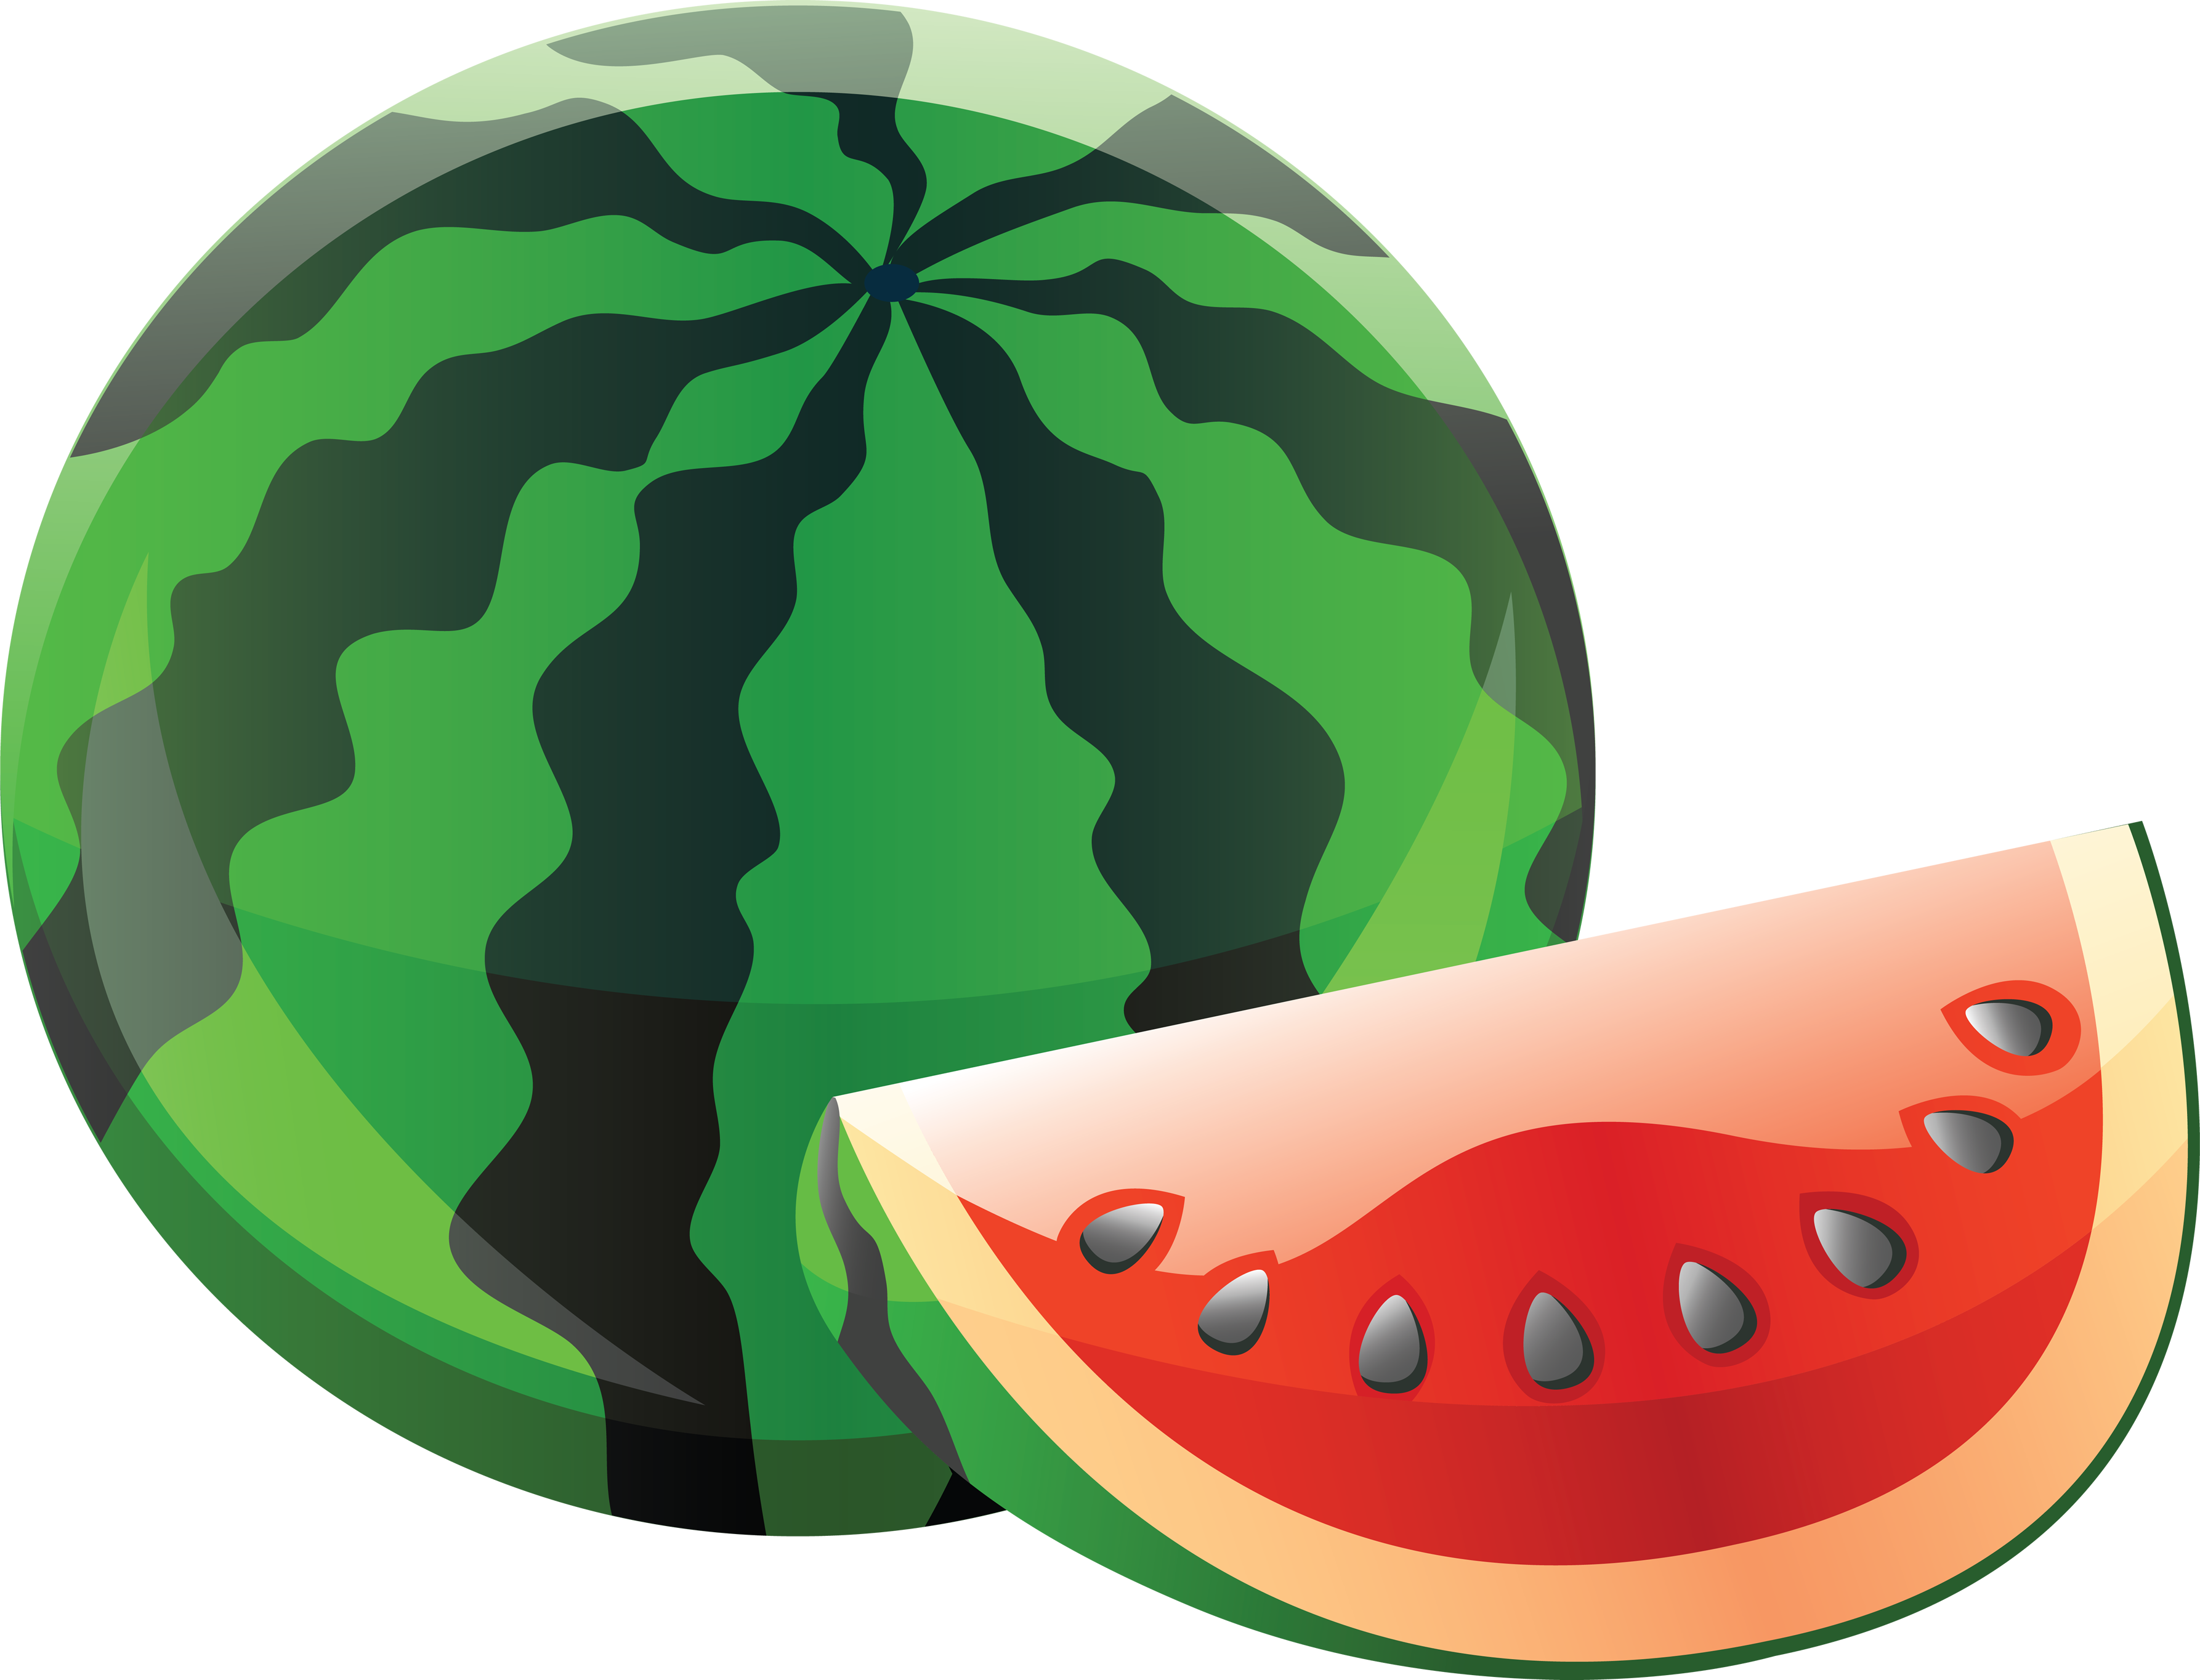 Watermelon clipart #7, Download drawings